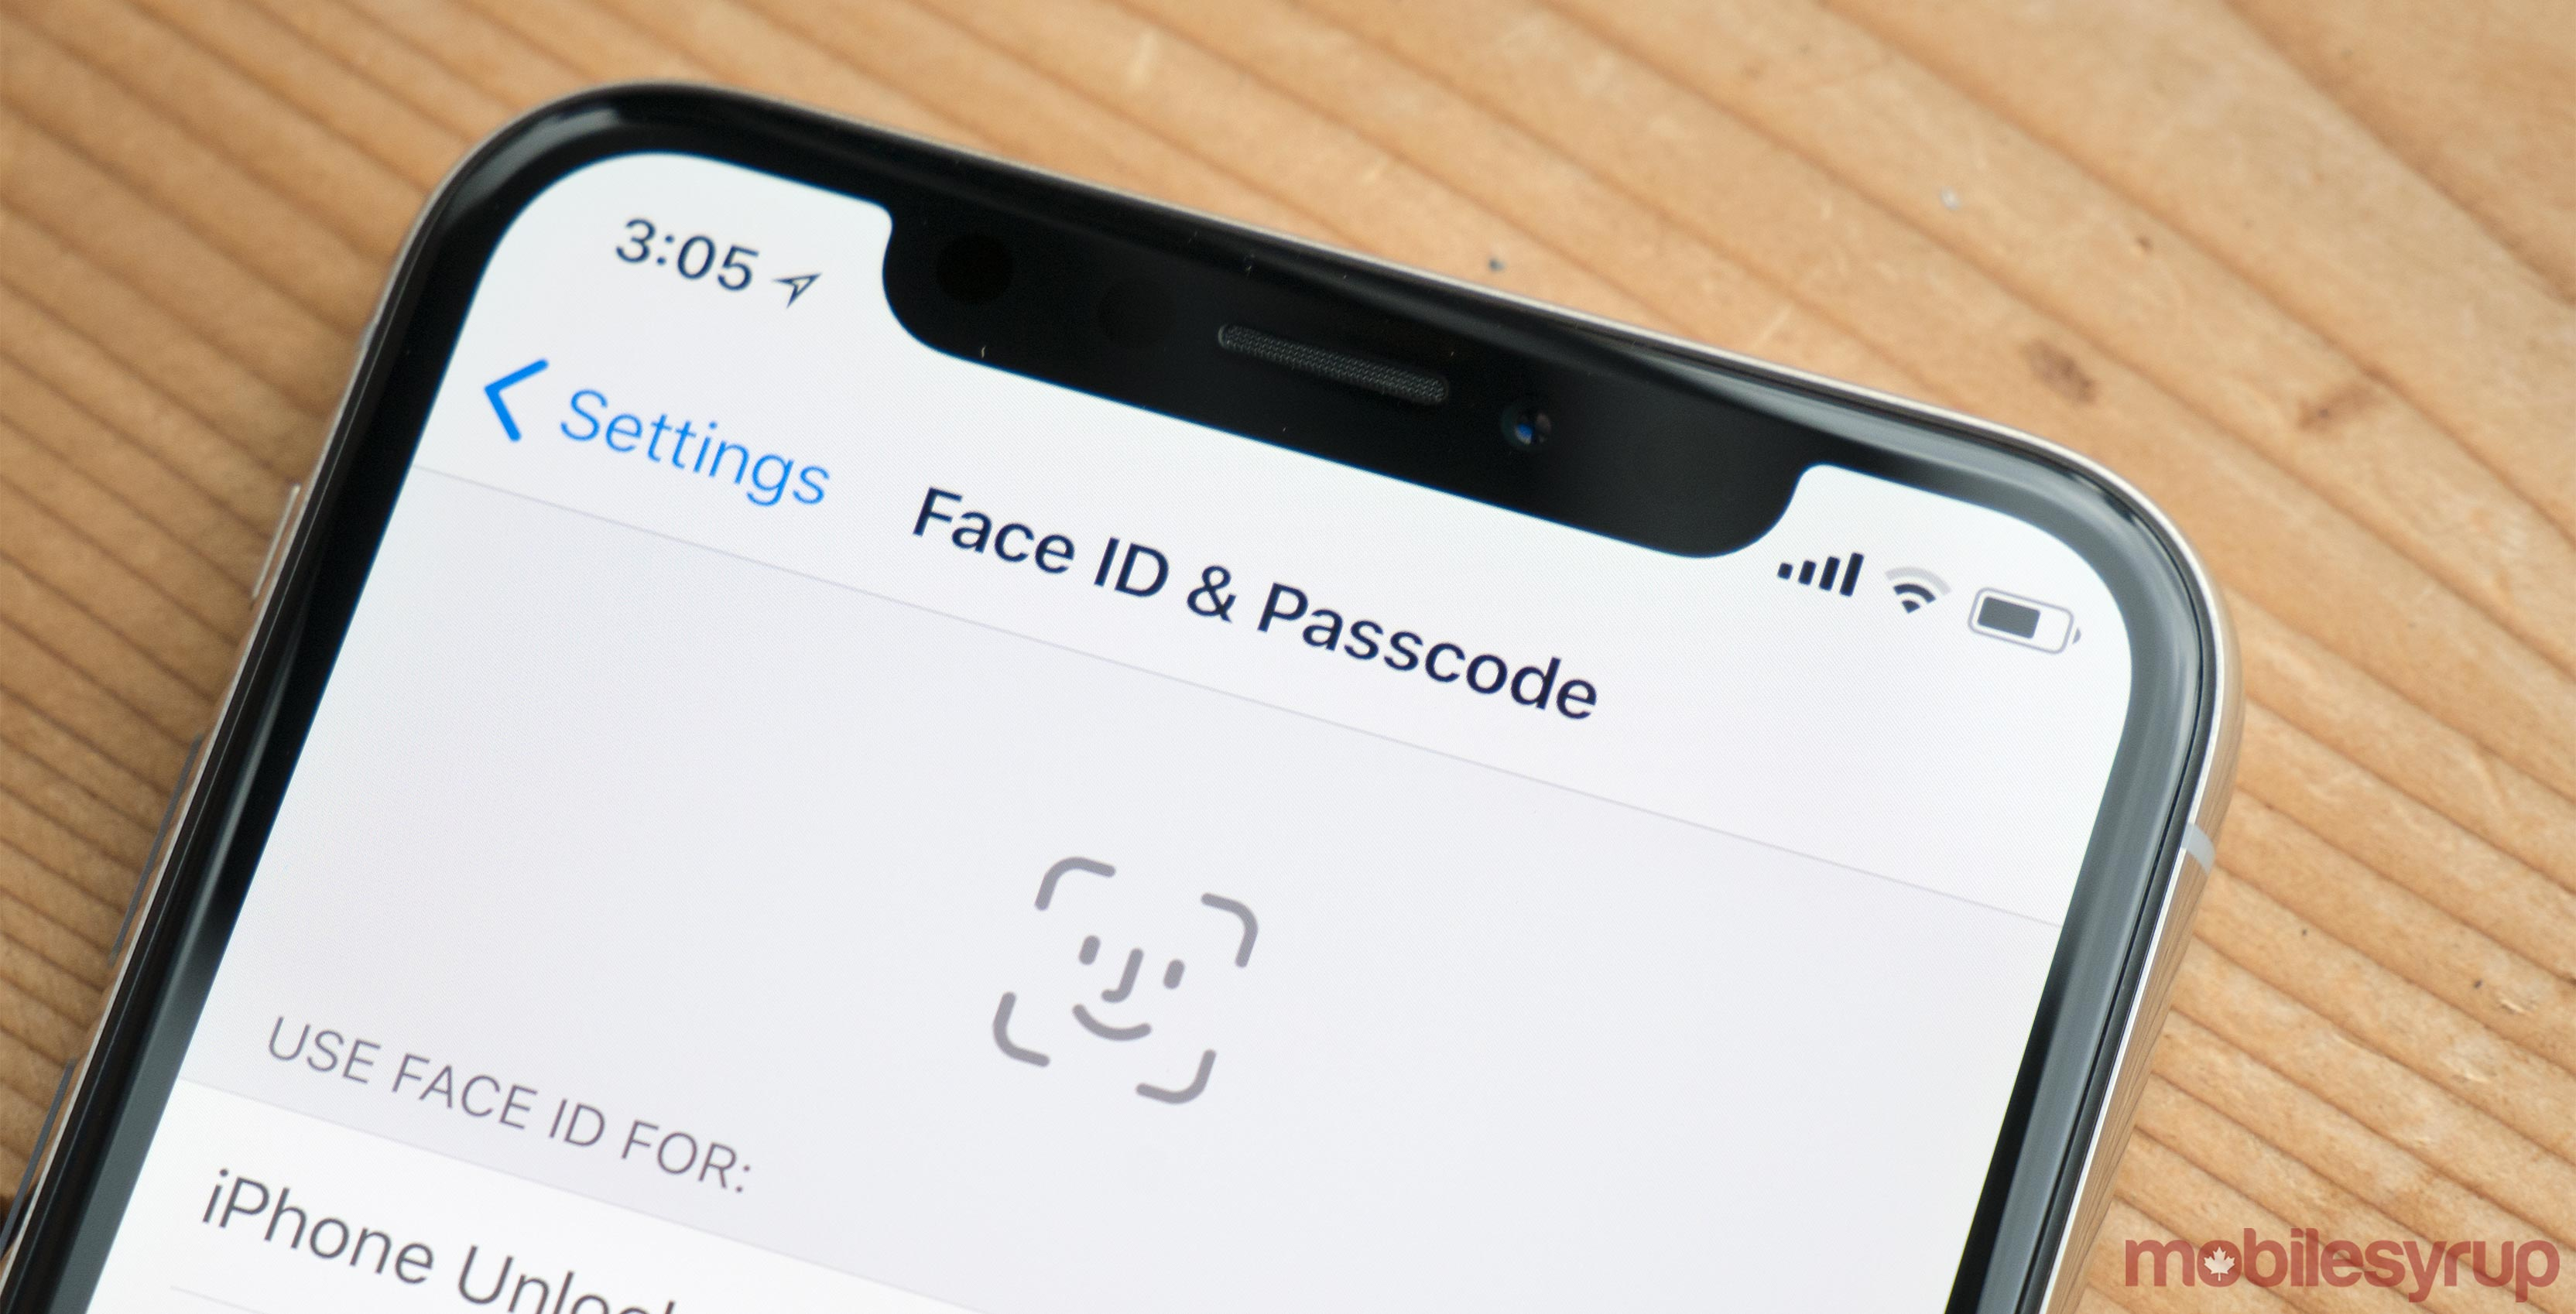 iPhone X Face ID settings